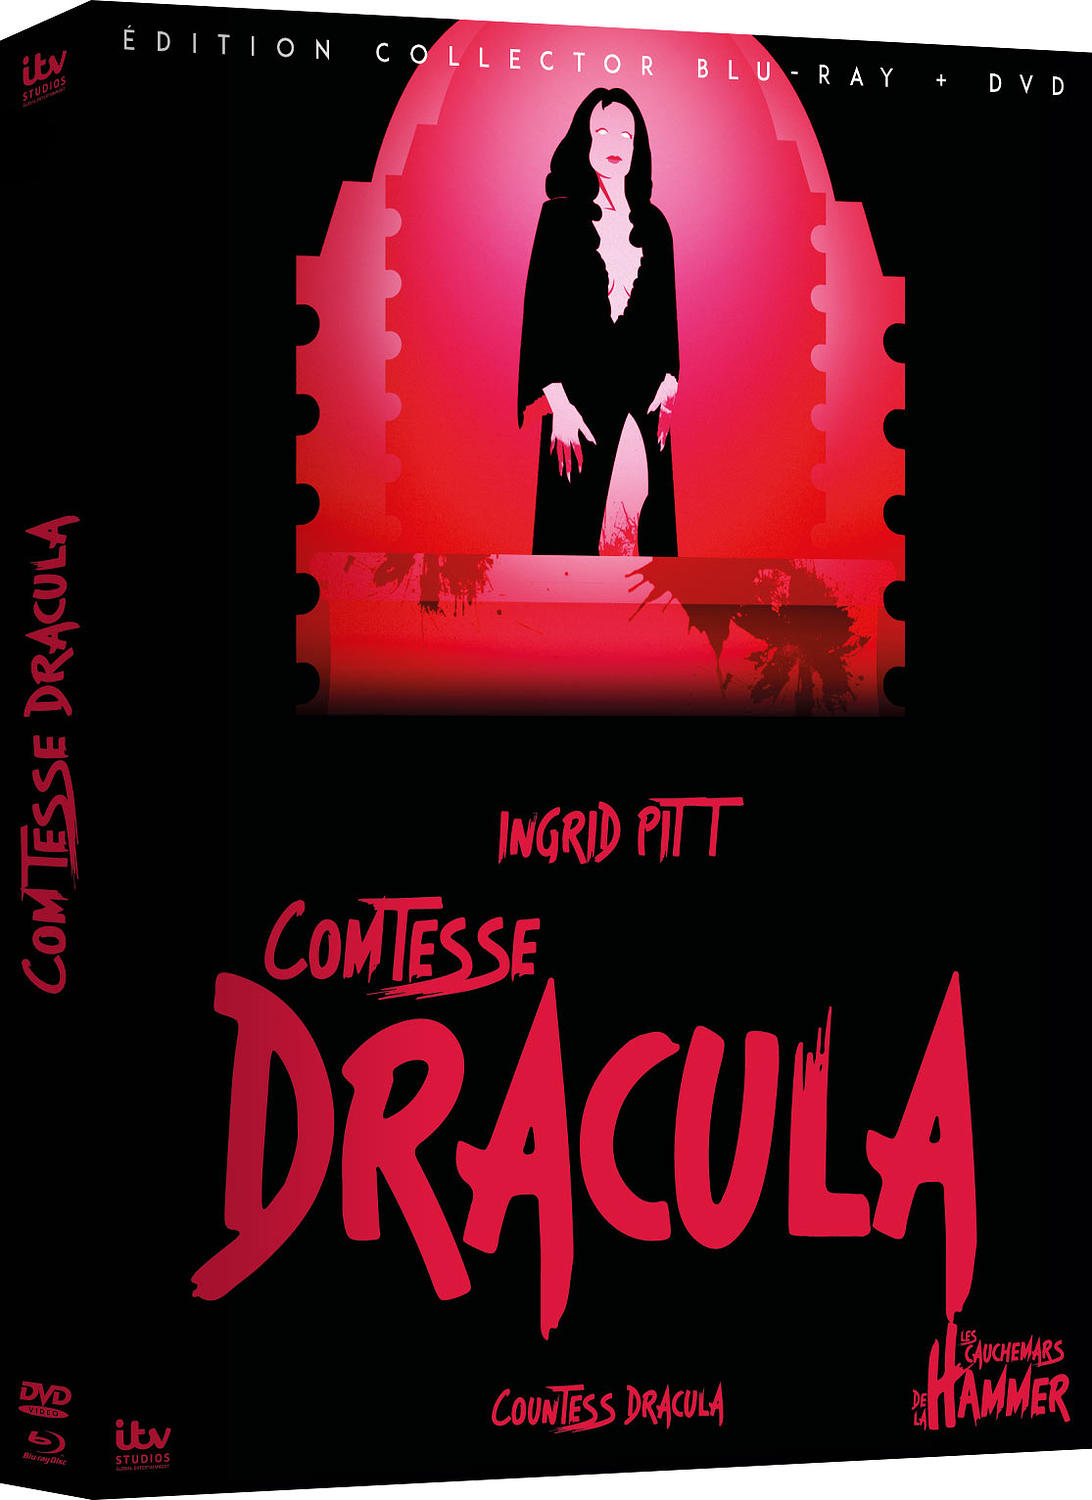 Comtesse Dracula = Countess Dracula |